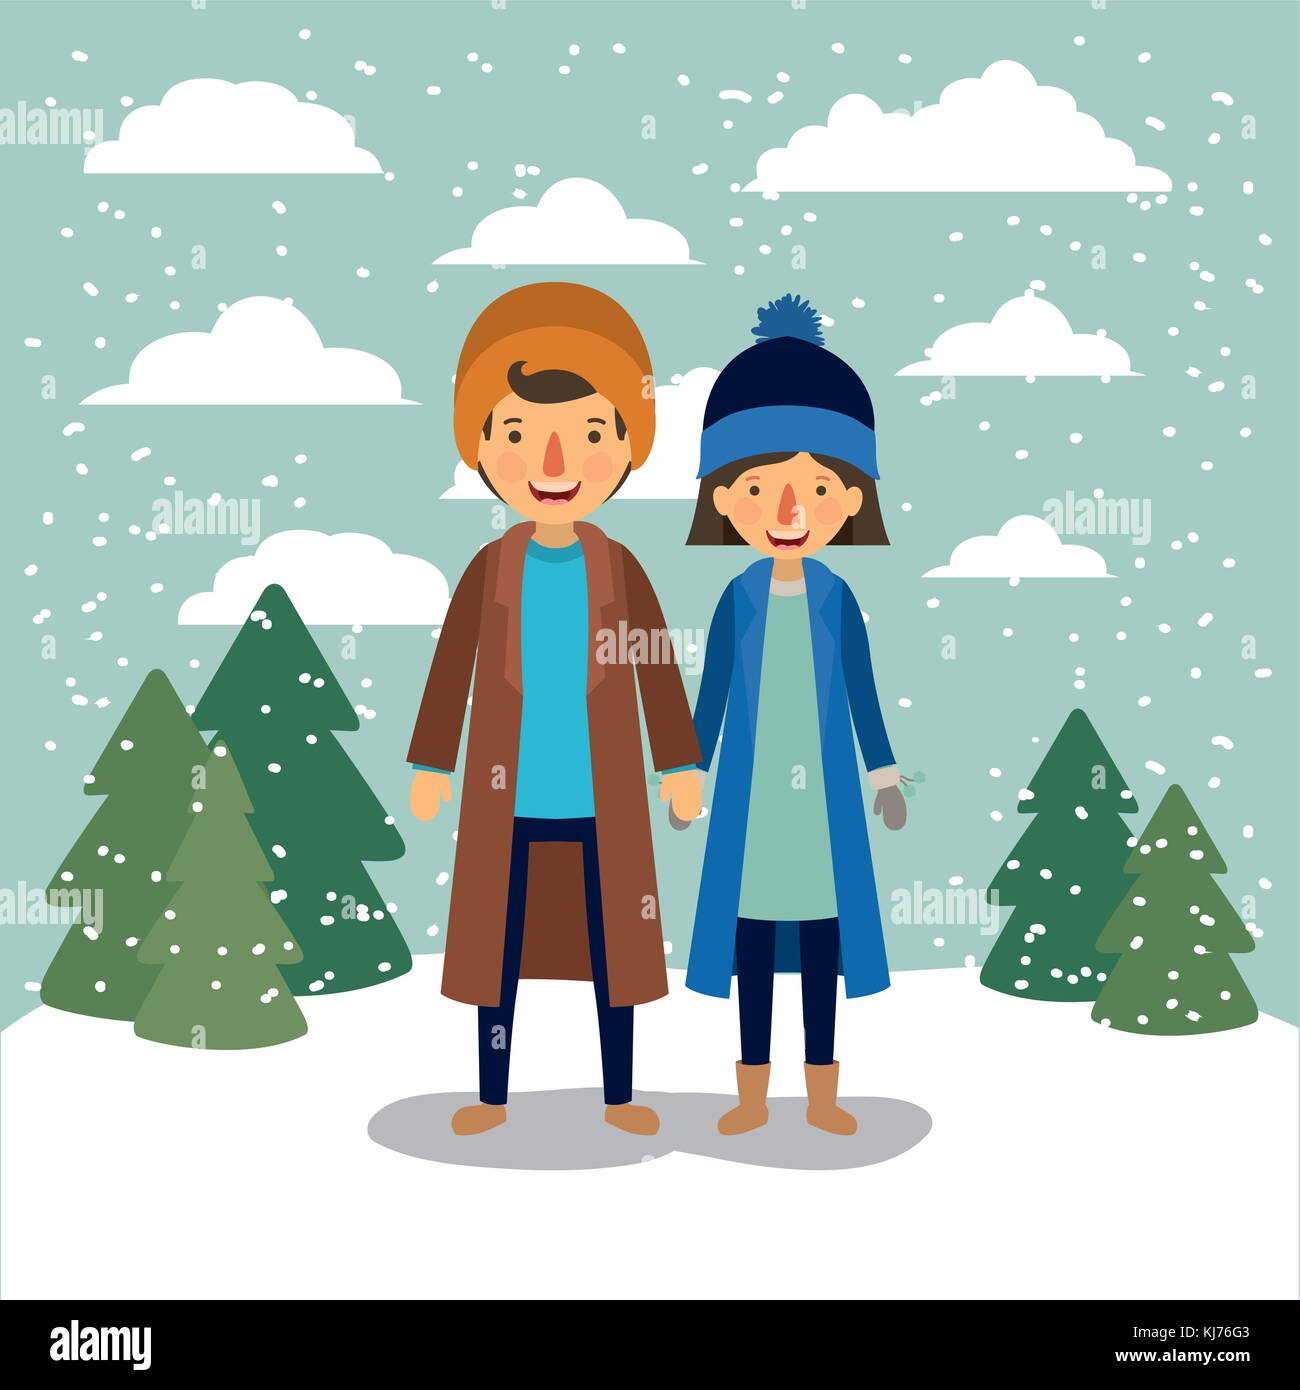 winter people background with couple in colorful landscape with pine trees and snow falling and both with coats - Stock Vector